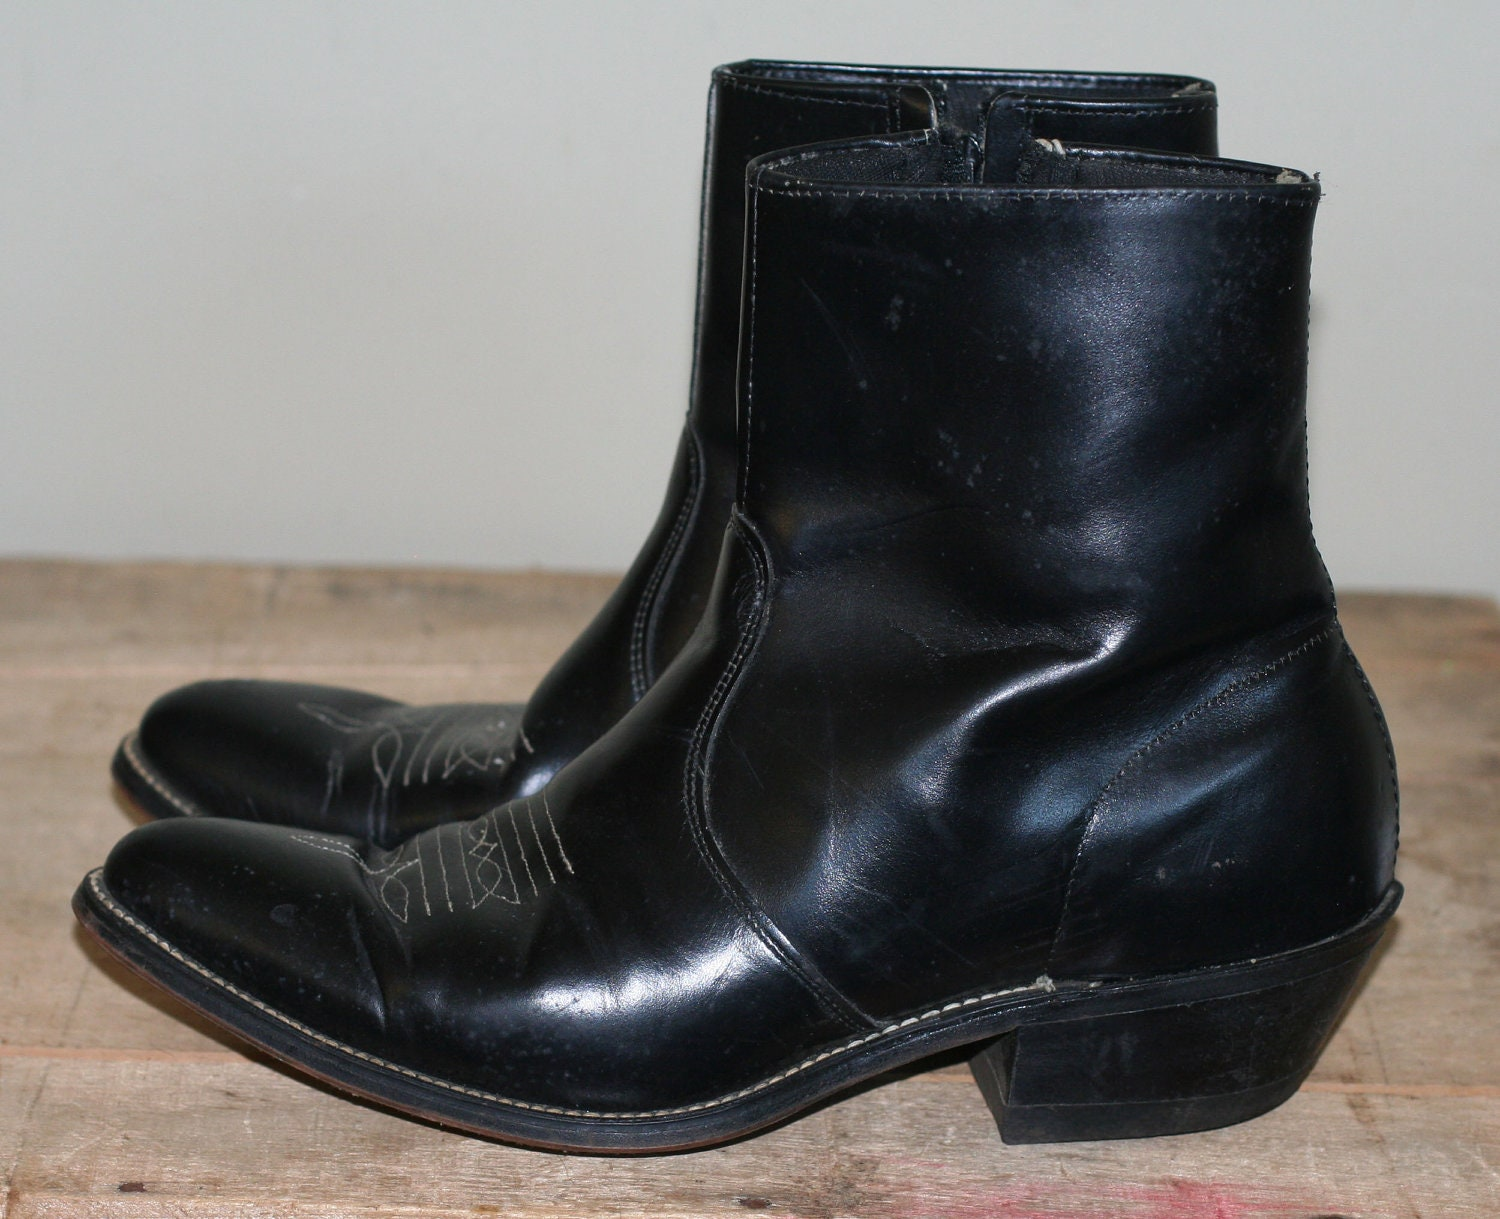 Vintage Mens Western Zip Up Ankle Boots Size 8 8 5